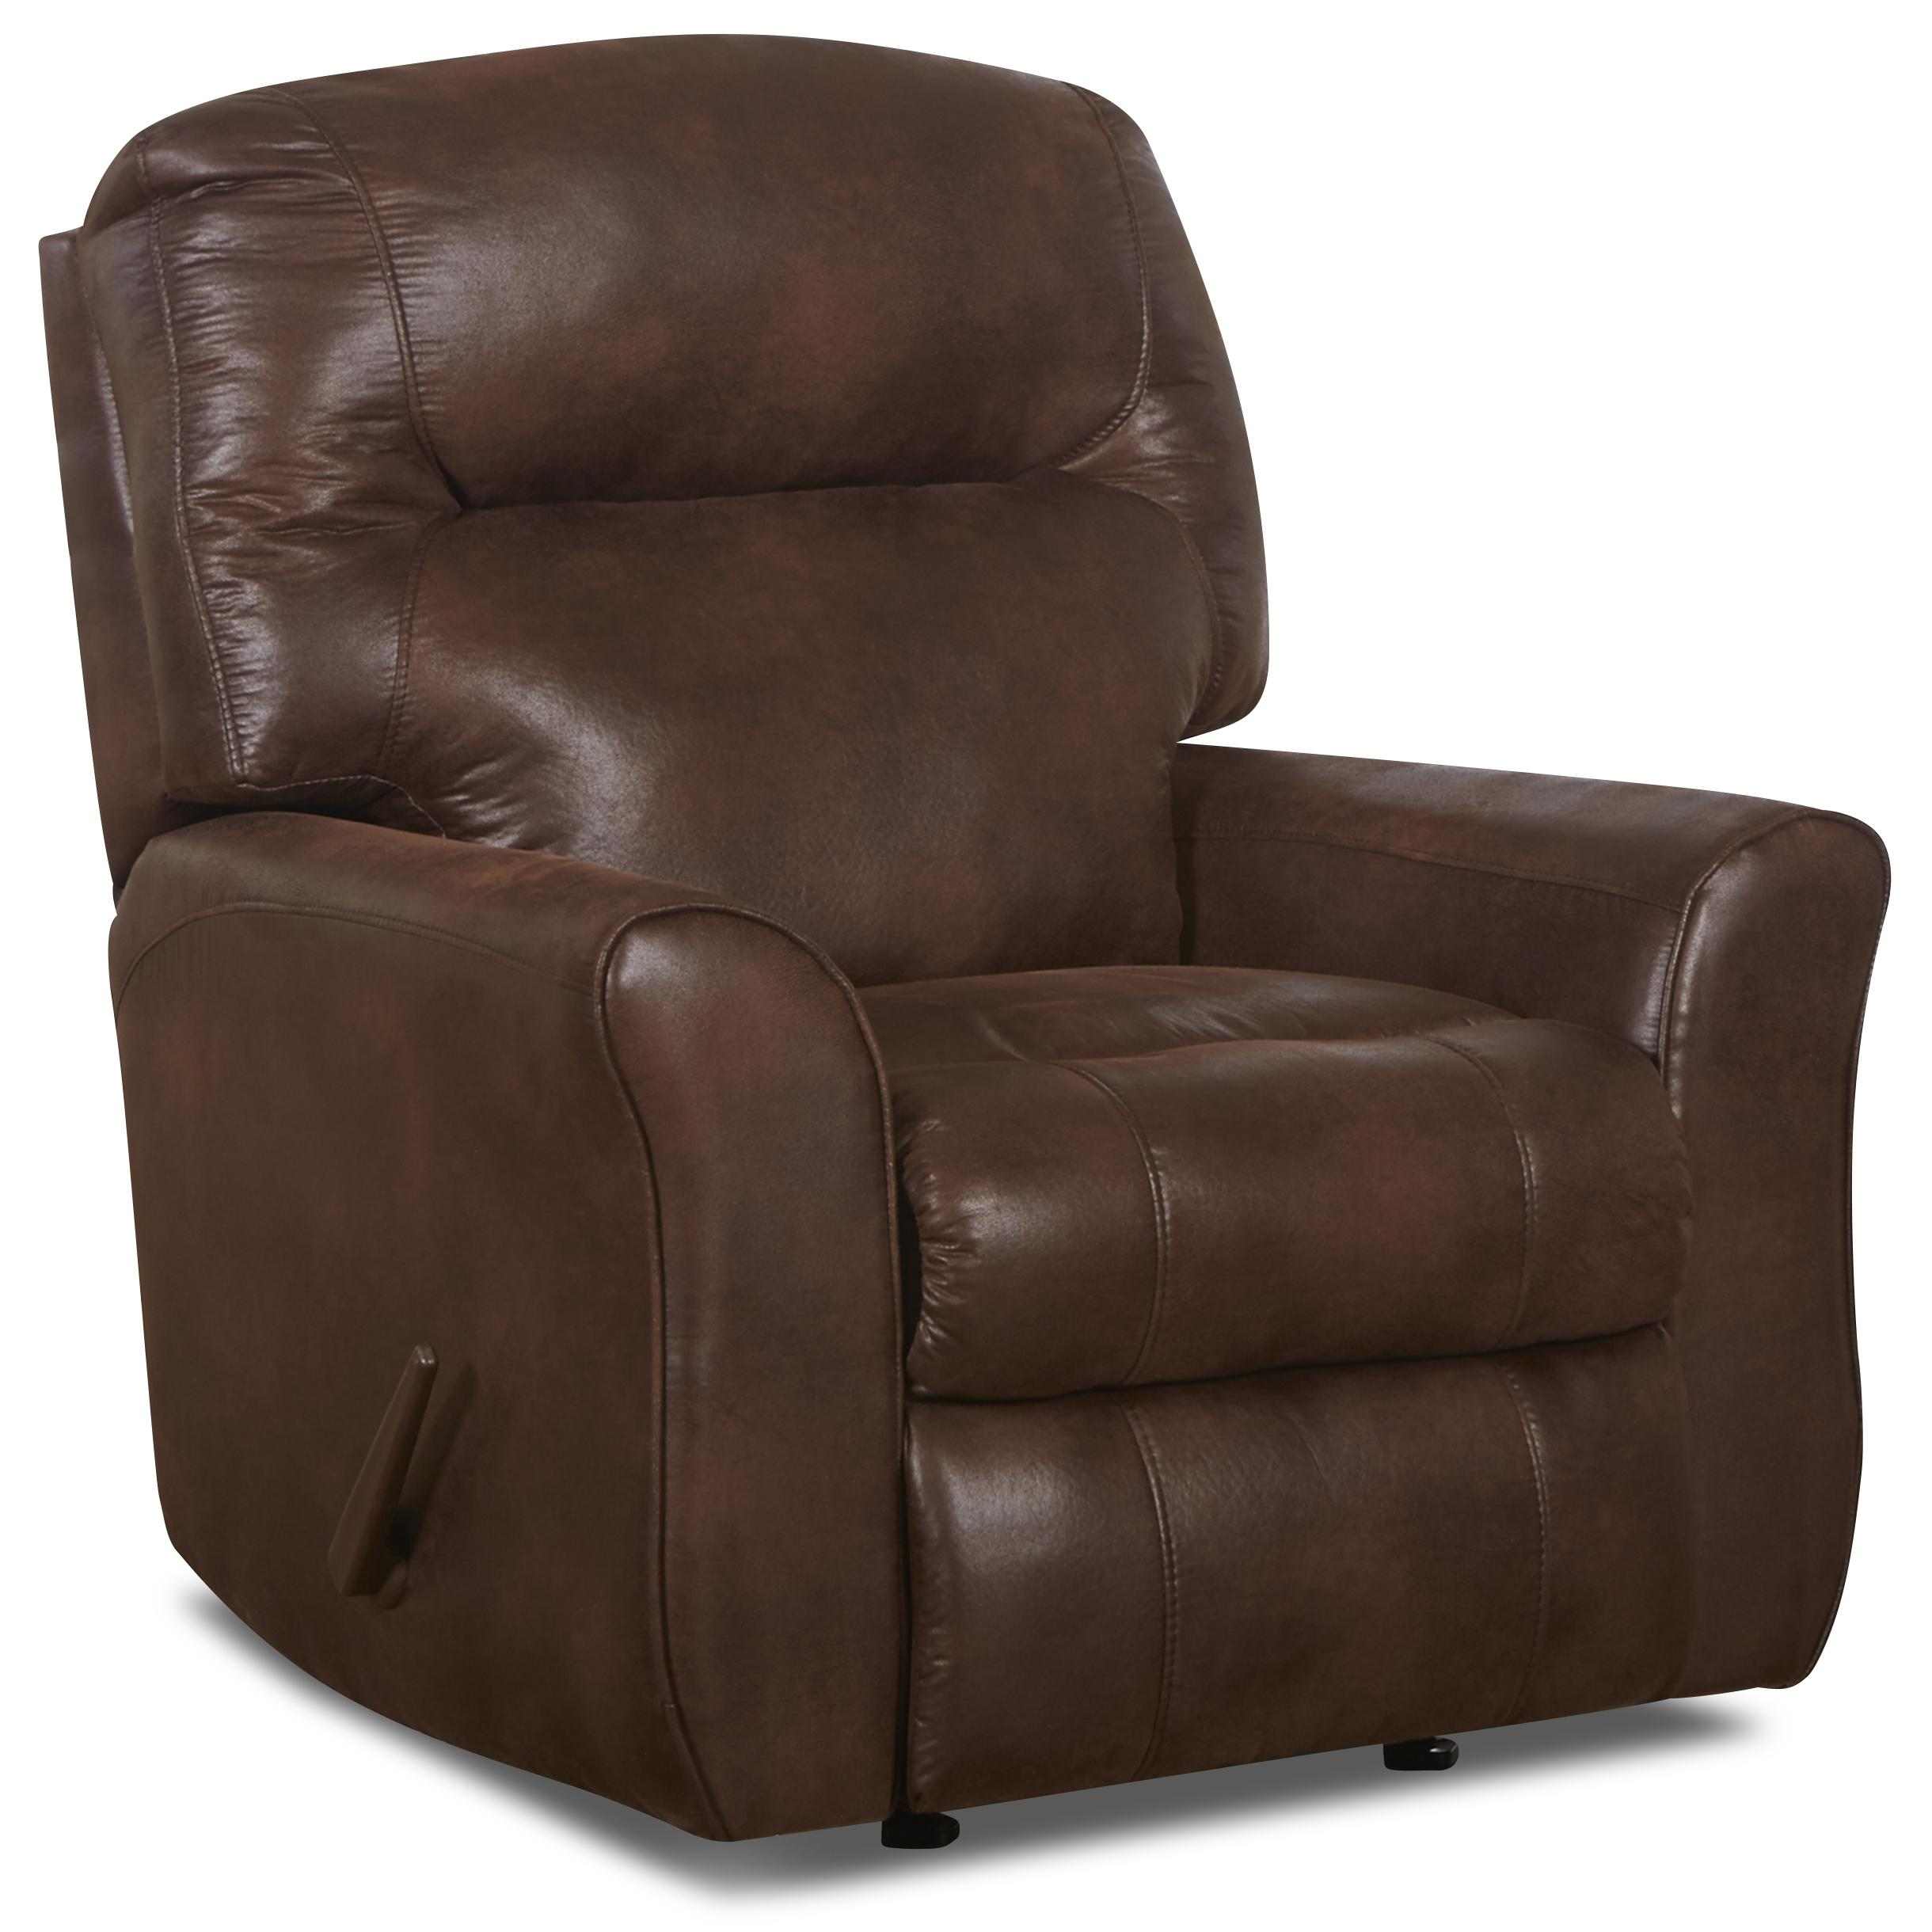 Casual Leather Reclining Rocking Chair with Attached Back Pillows and Outside Handle Activation